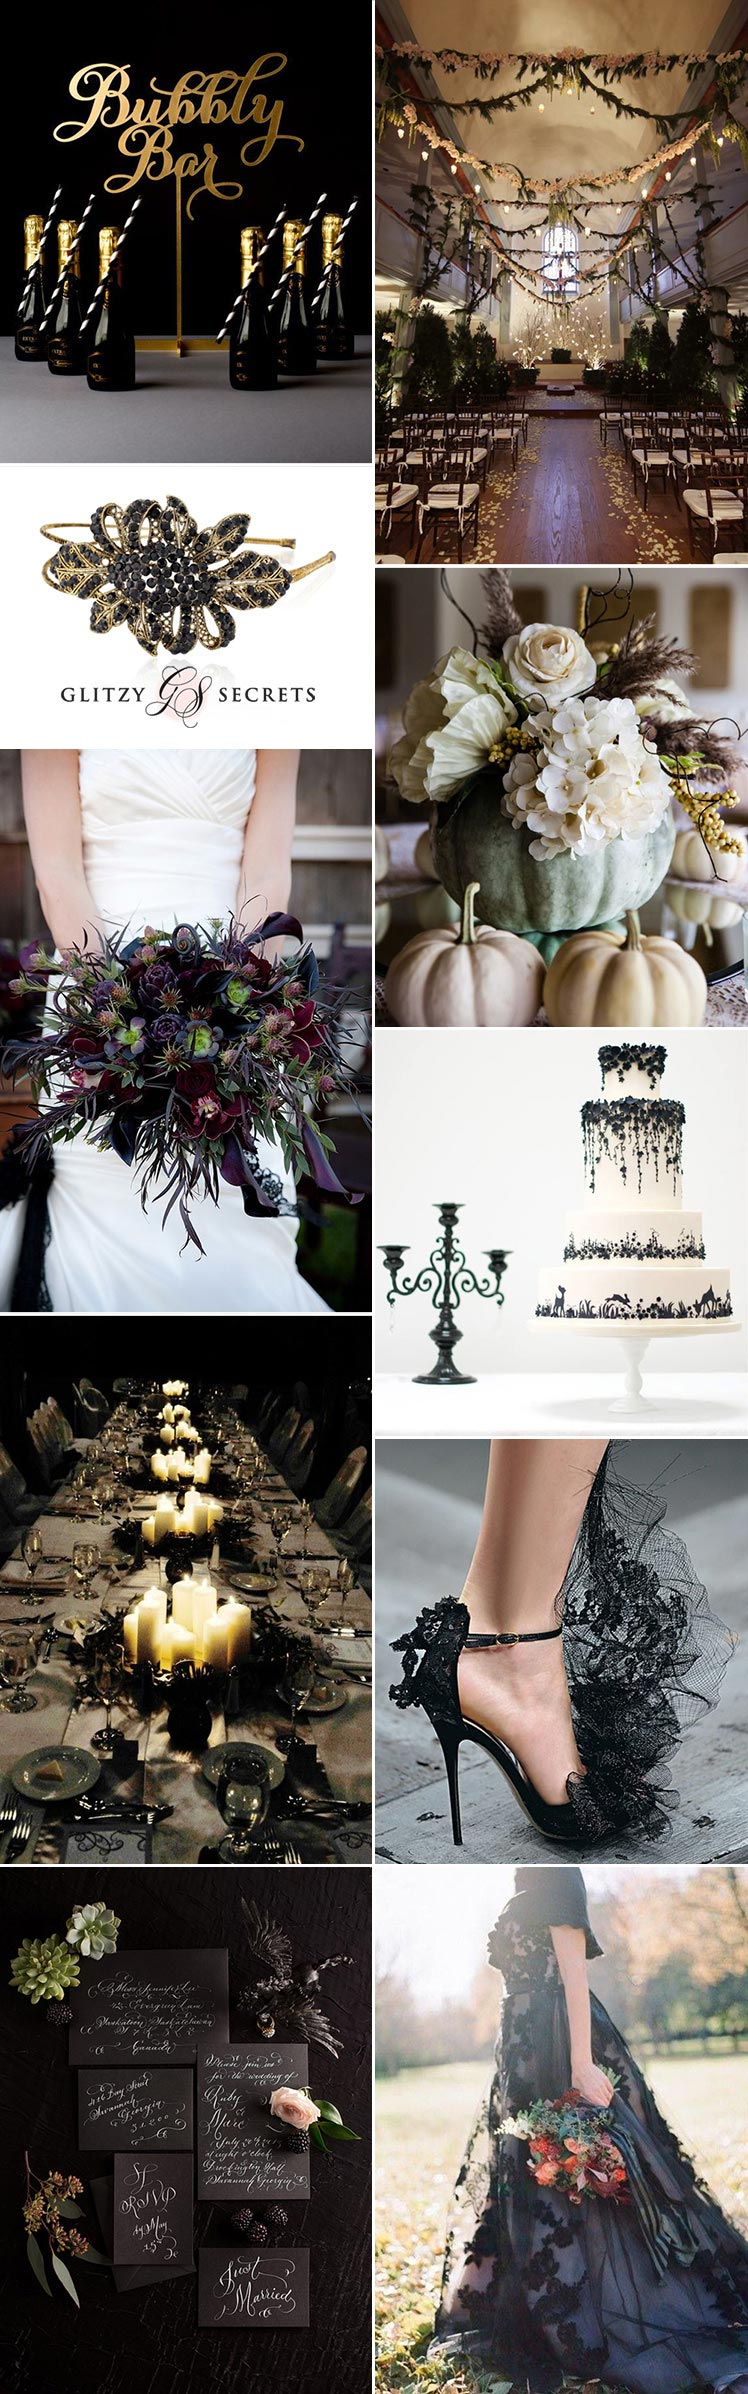 Glamorous Halloween wedding theme ideas